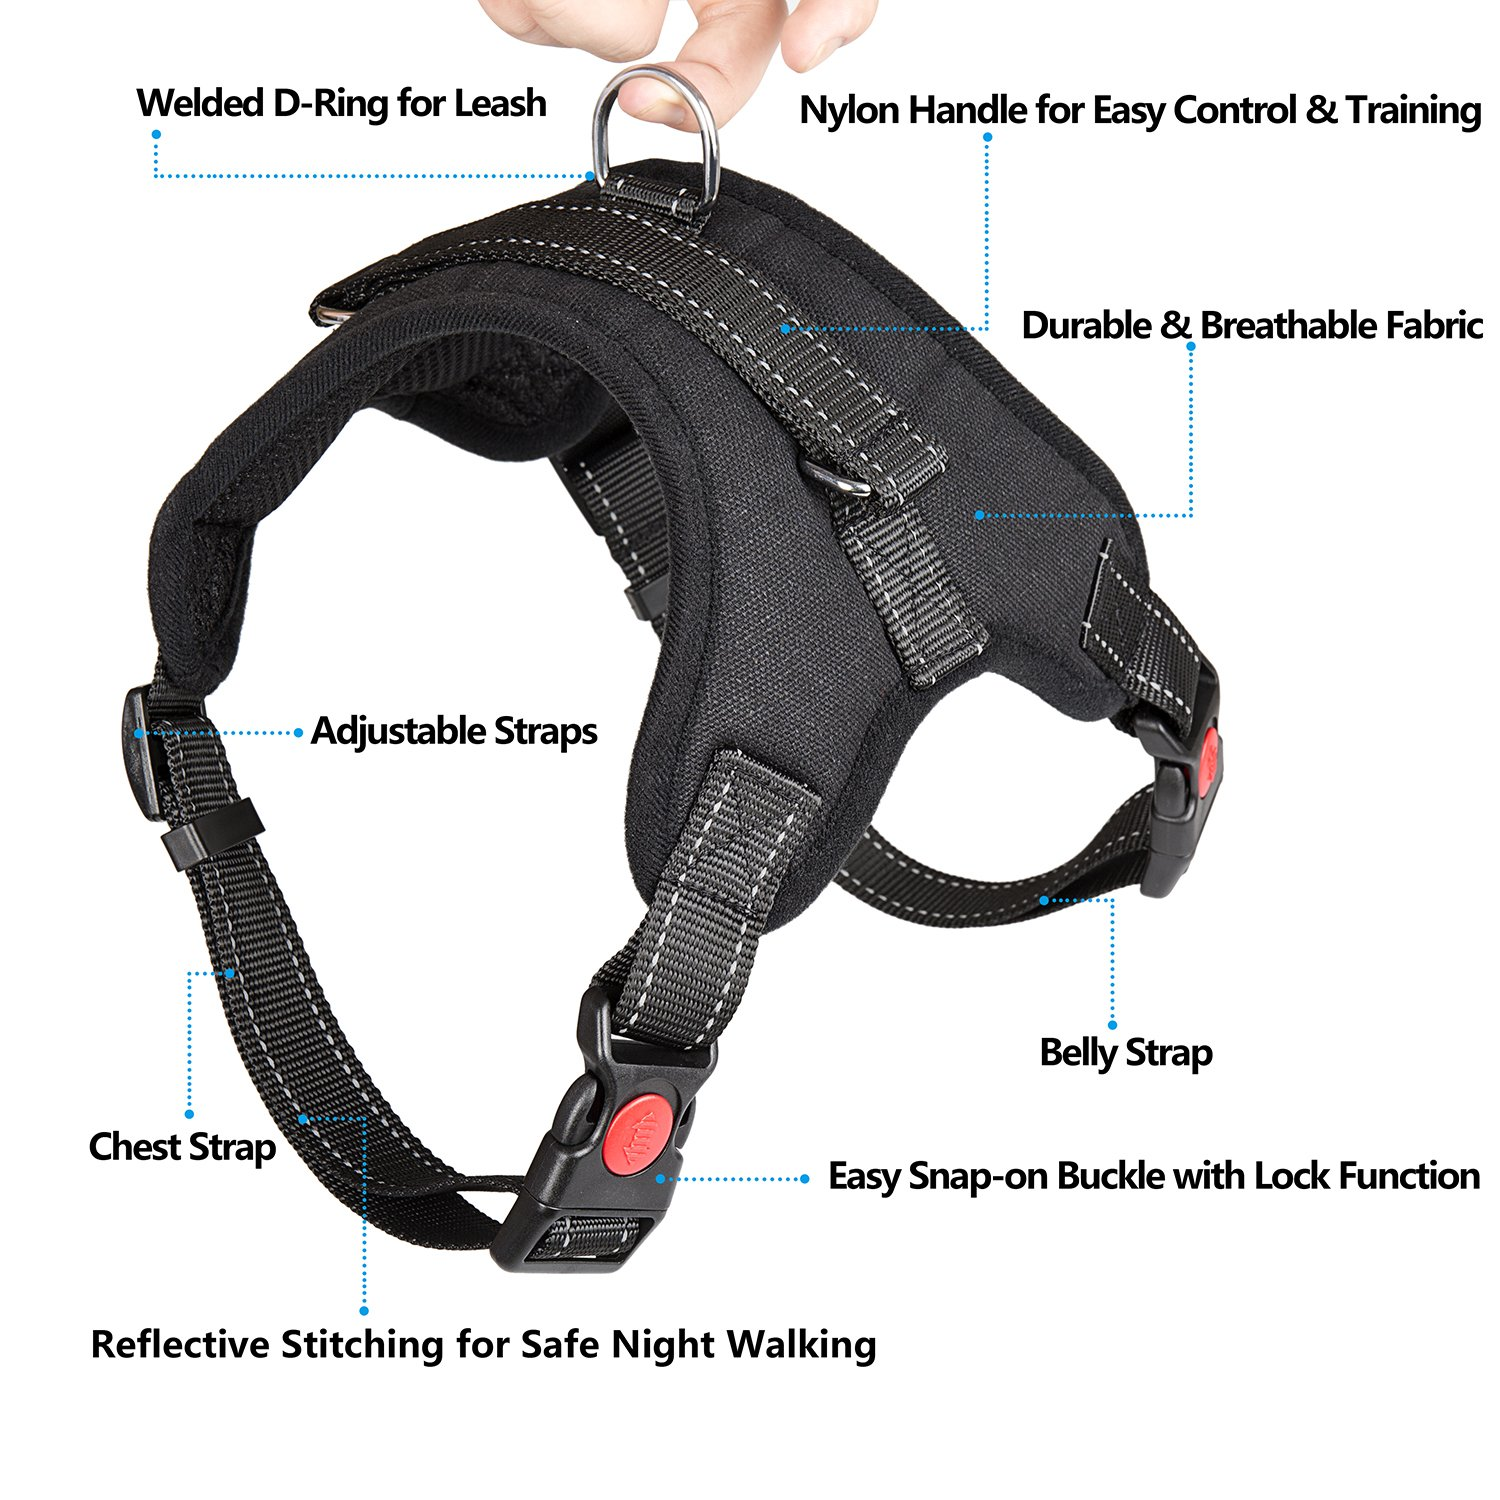 Dog Harness No-Pull Pet Harness - Adjustable Padded Reflective Pet Vest with Handle & Dog Leash Set - Easy Control for Small Medium Large Dogs - Perfect for Daily Training Walking Running (Medium) by THE ONE (Image #2)